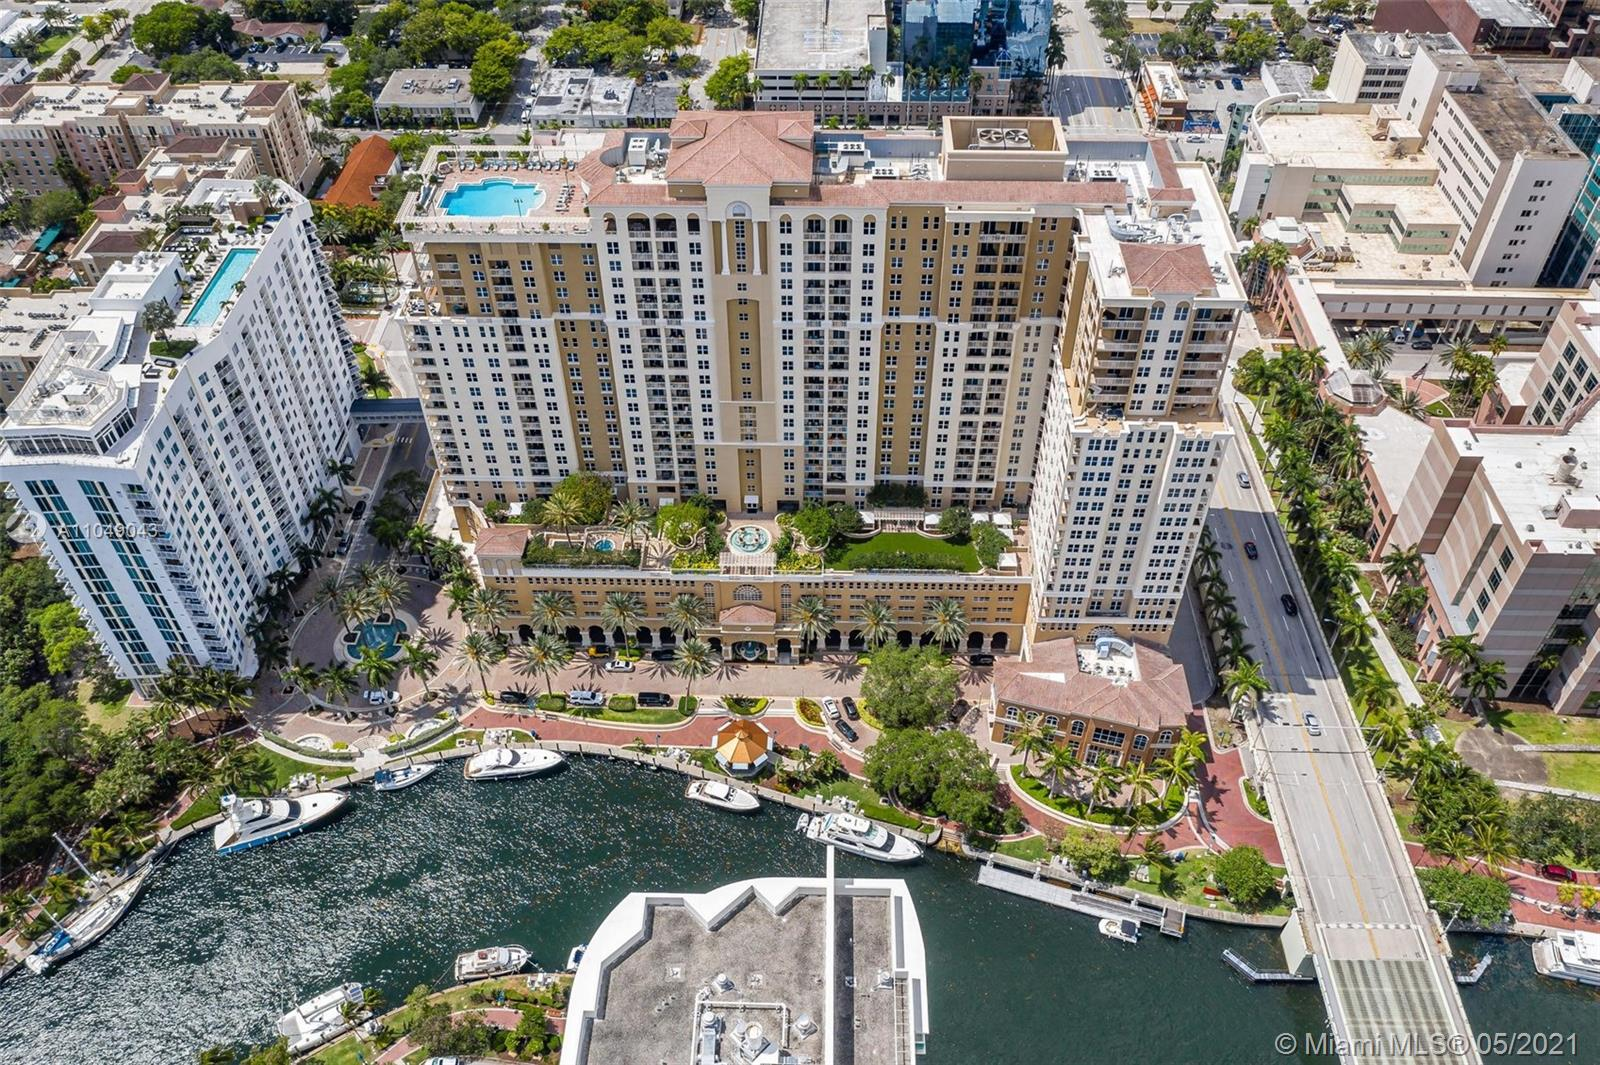 Beautiful 2 bed/1 bath condo located downtown Fort Lauderdale on the New River. This unit has tile flooring and new carpet in the master bedroom, a beautiful kitchen with stainless steel appliances, impact glass windows, a split bedroom floor plan, an open balcony, and a washer/dryer. In addition, this premier downtown condo building has 5-star amenities including: Rooftop pool, indoor Basketball & Racquetball Courts, BBQ Grills, Steam Room & Saunas, Hot tub, Large 2-story Fitness Center, 24hr security and front desk, all walking distance to world renown Las Olas Boulevard. 2 minutes to the beach. Enjoy the amazing city lifestyle with fine dining, shops, nightlife, and much more!